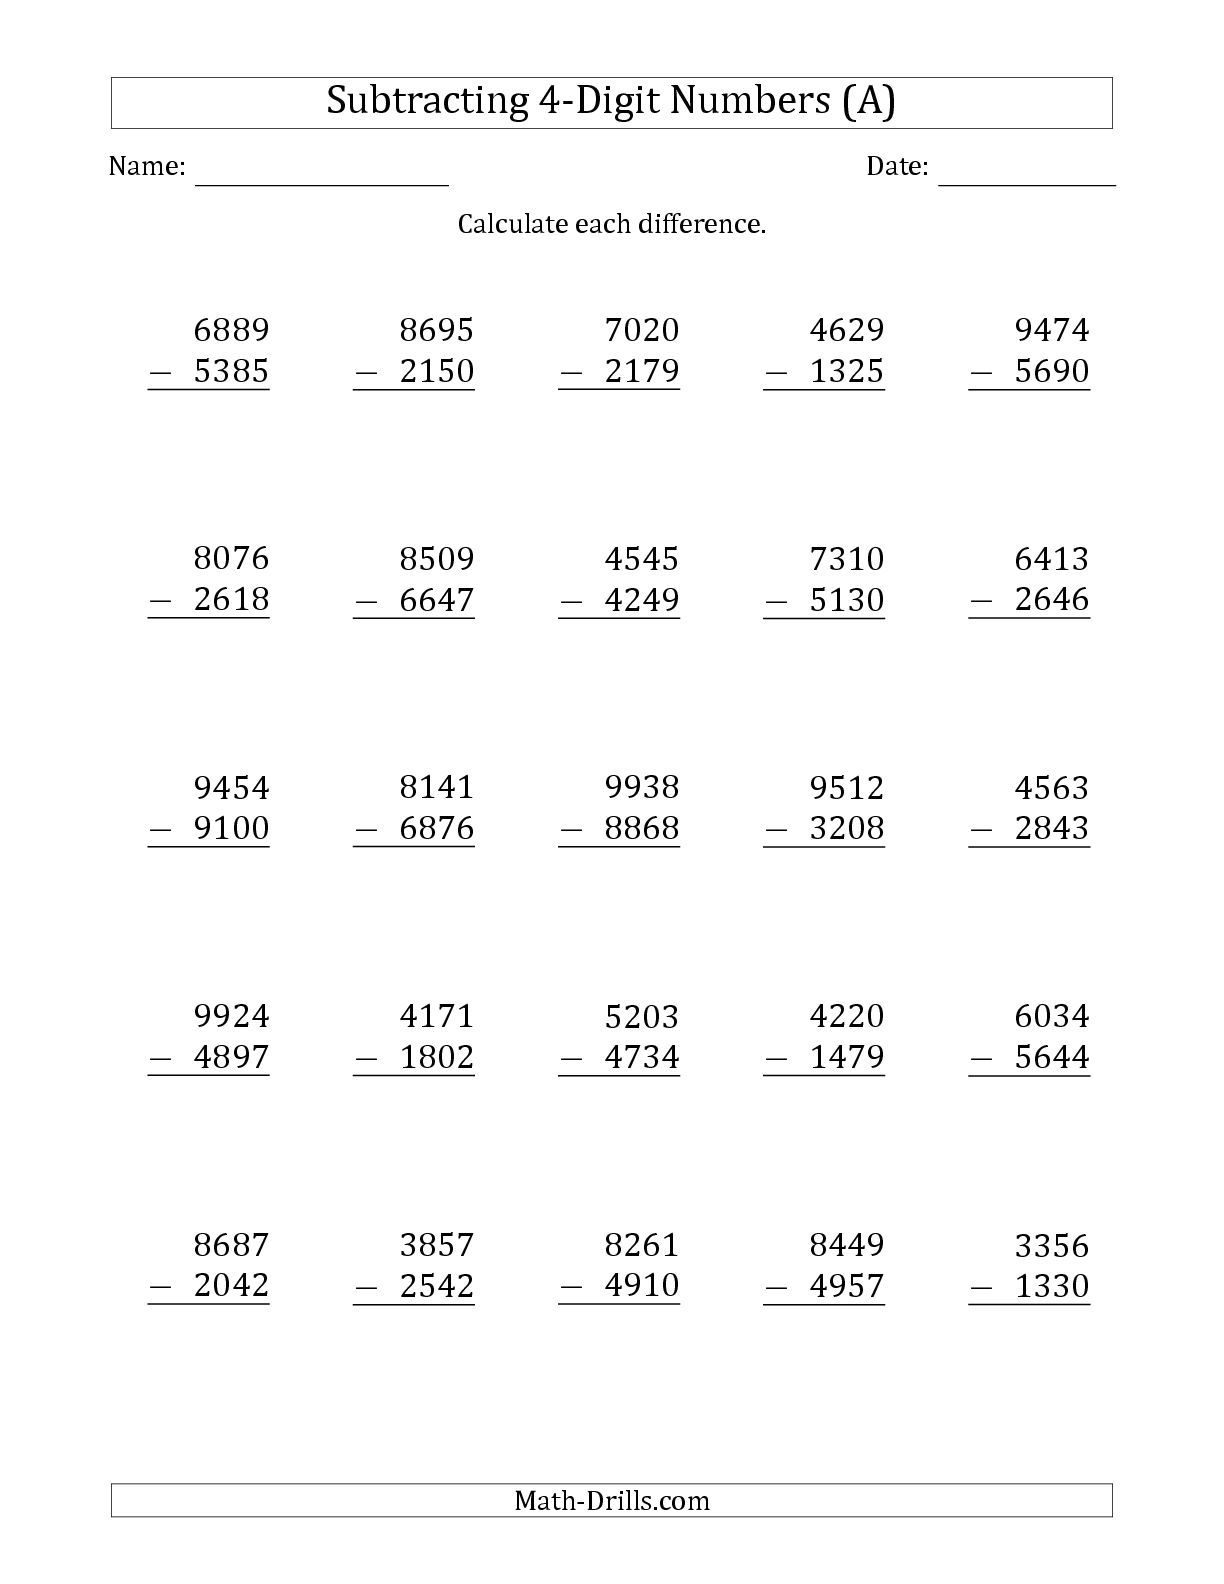 worksheet Subtraction Worksheets 3rd Grade the 4 digit minus subtraction a math worksheet from the